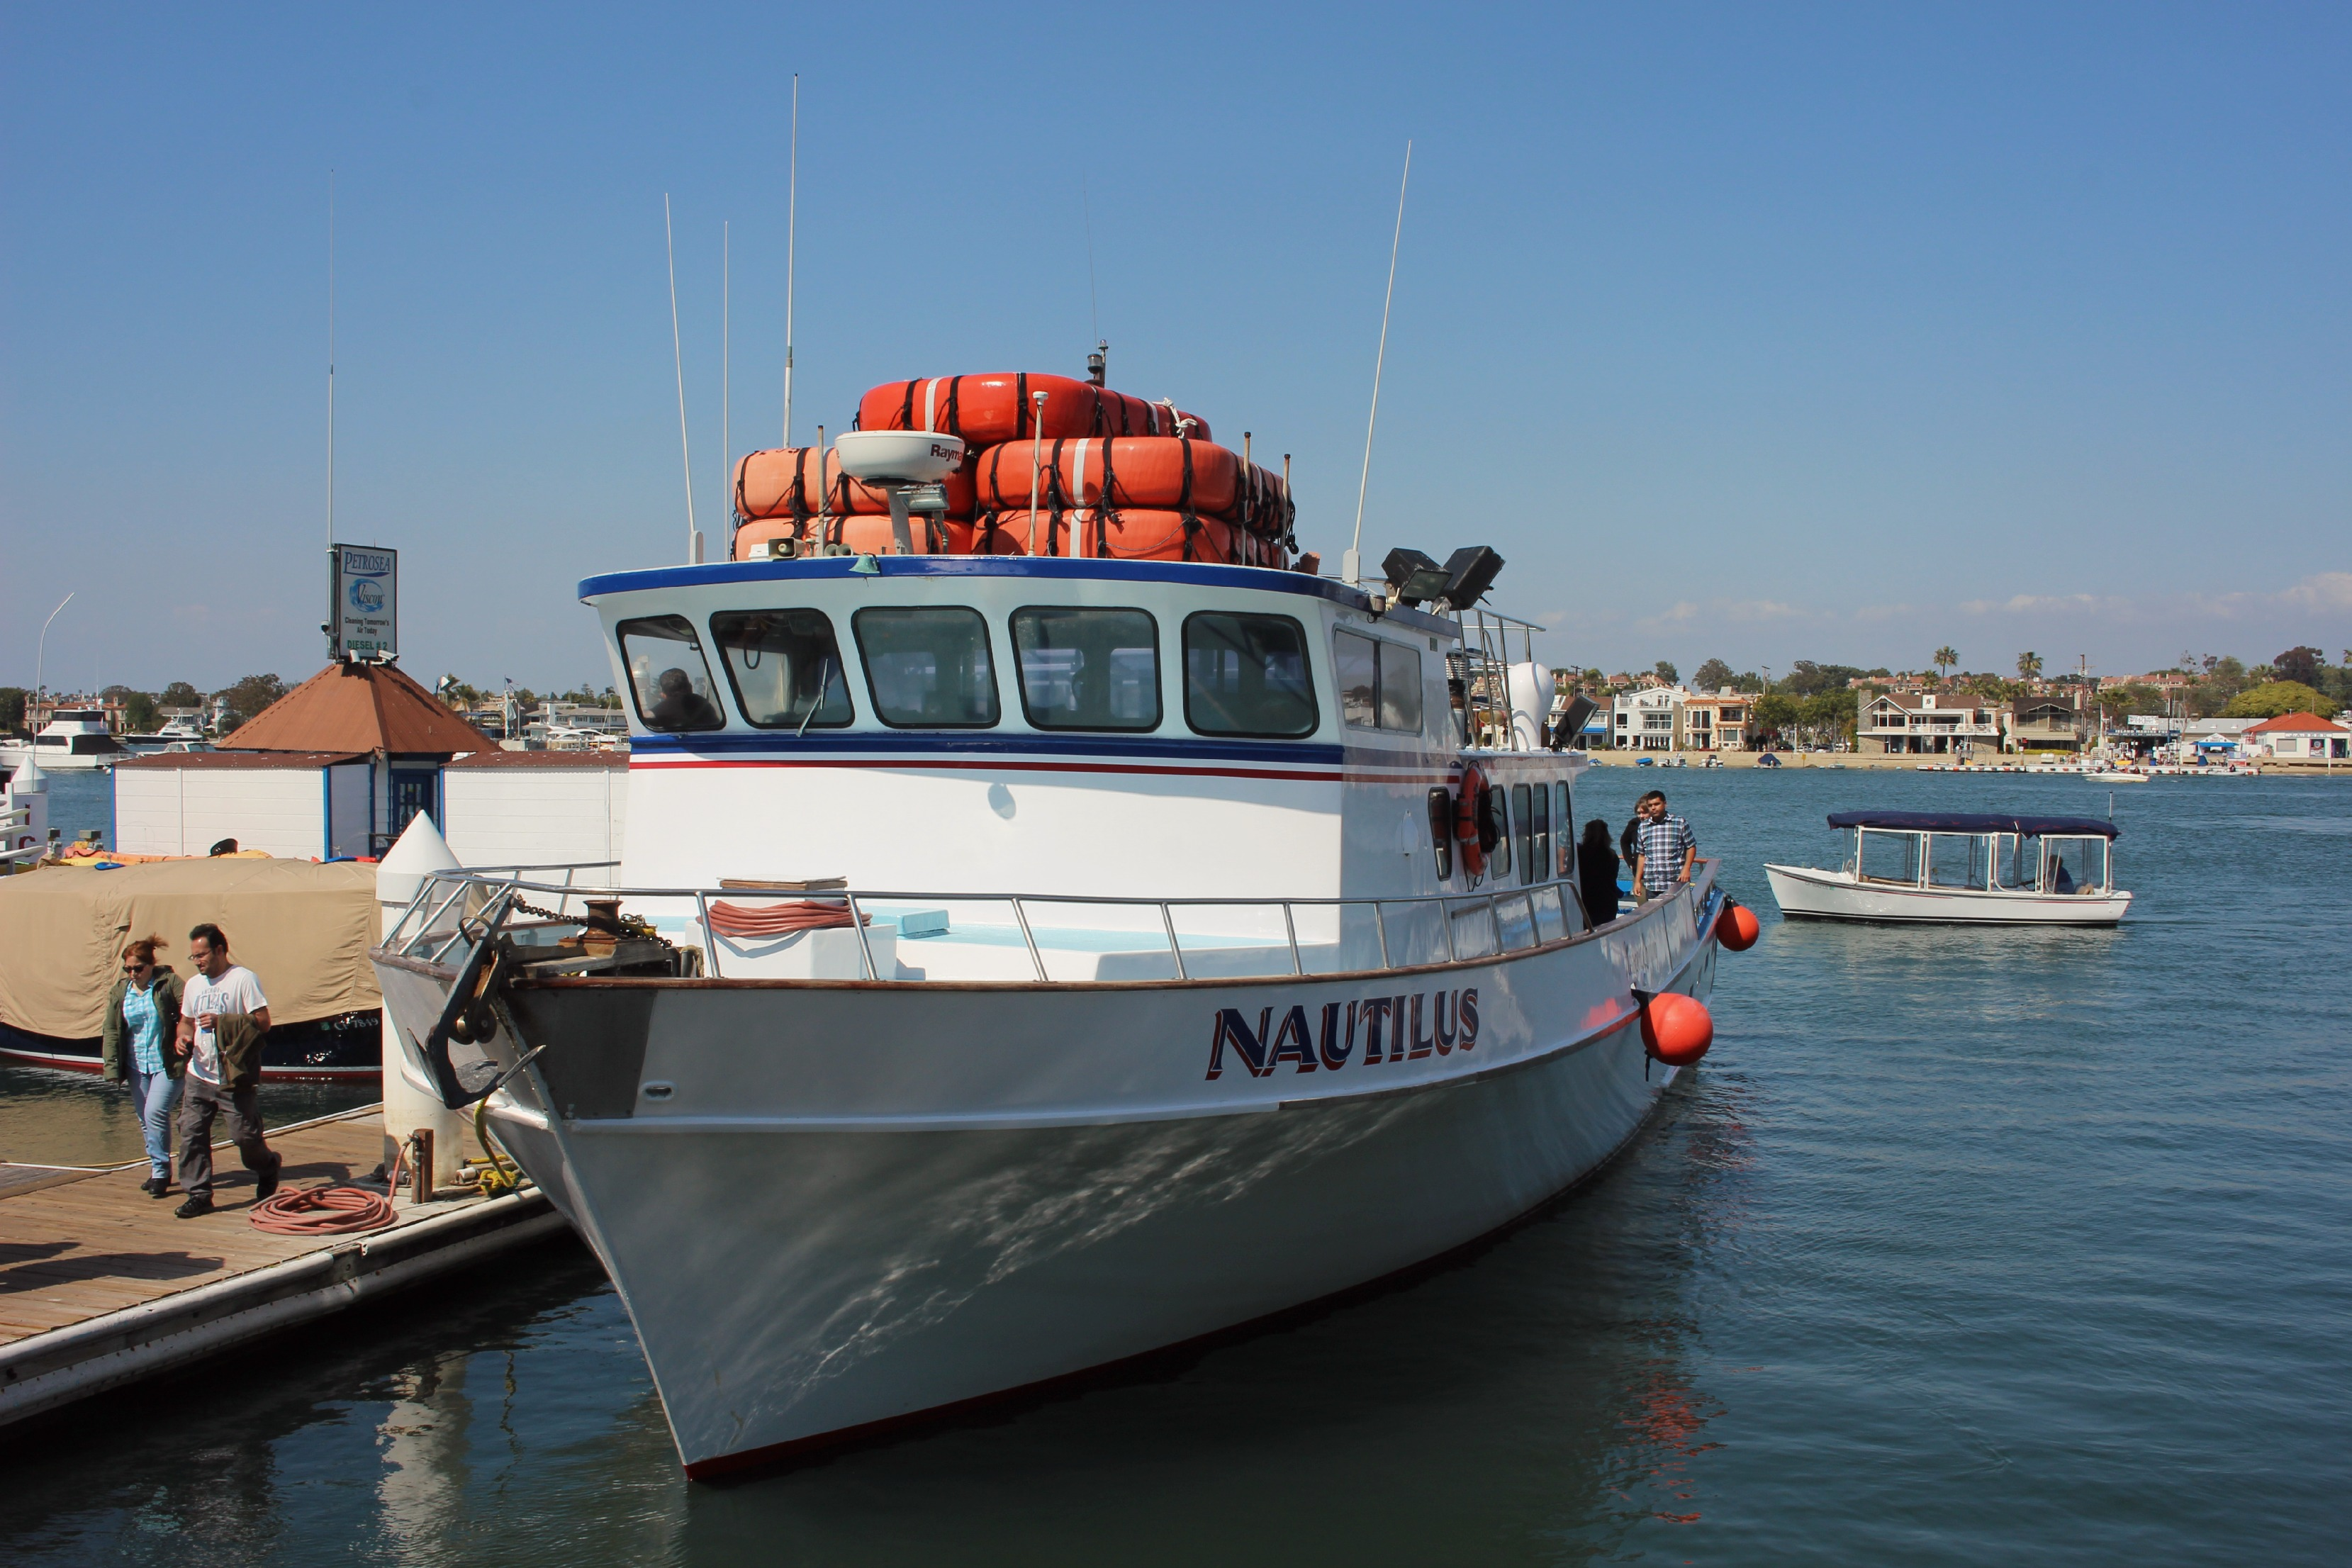 This Was Our Newport Landing Whale Watching Boat For The Afternoon It Could Comfortably Hold About 75 People